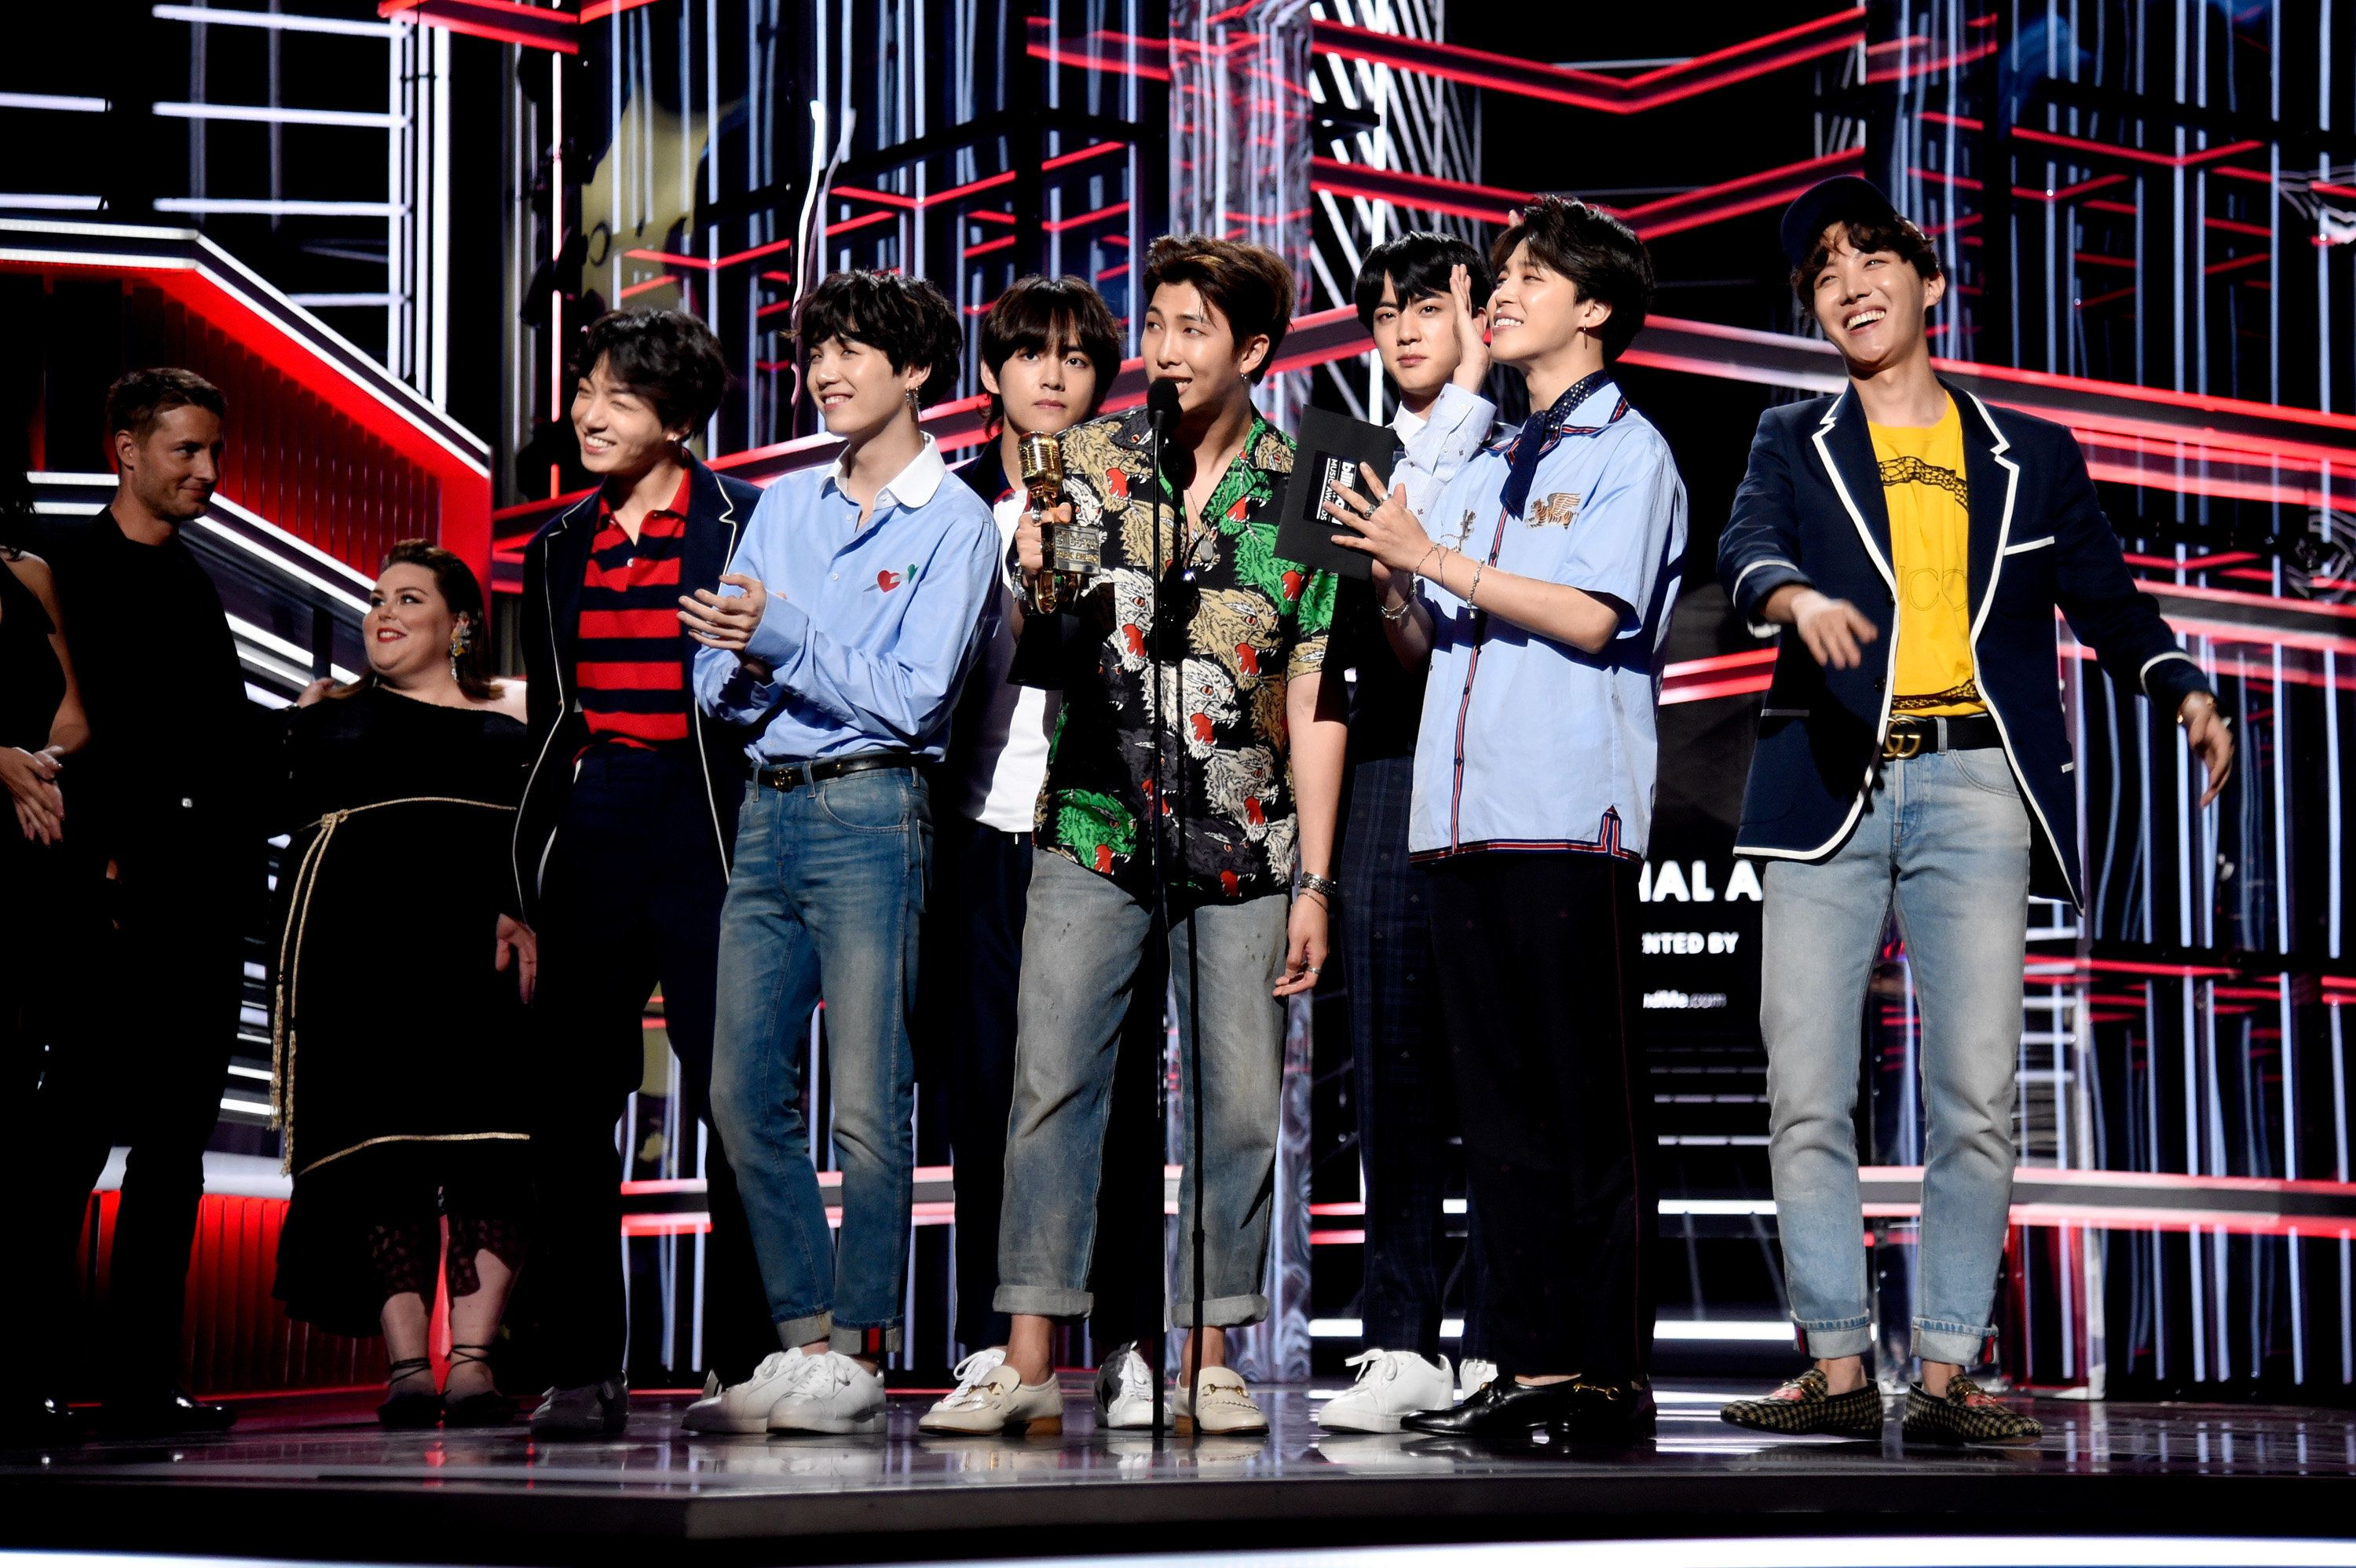 LAS VEGAS, NV - MAY 20:  Musical group BTS accepts Top Social Artist onstage at the 2018 Billboard Music Awards at MGM Grand Garden Arena on May 20, 2018 in Las Vegas, Nevada.  (Photo by Kevin Mazur/WireImage)